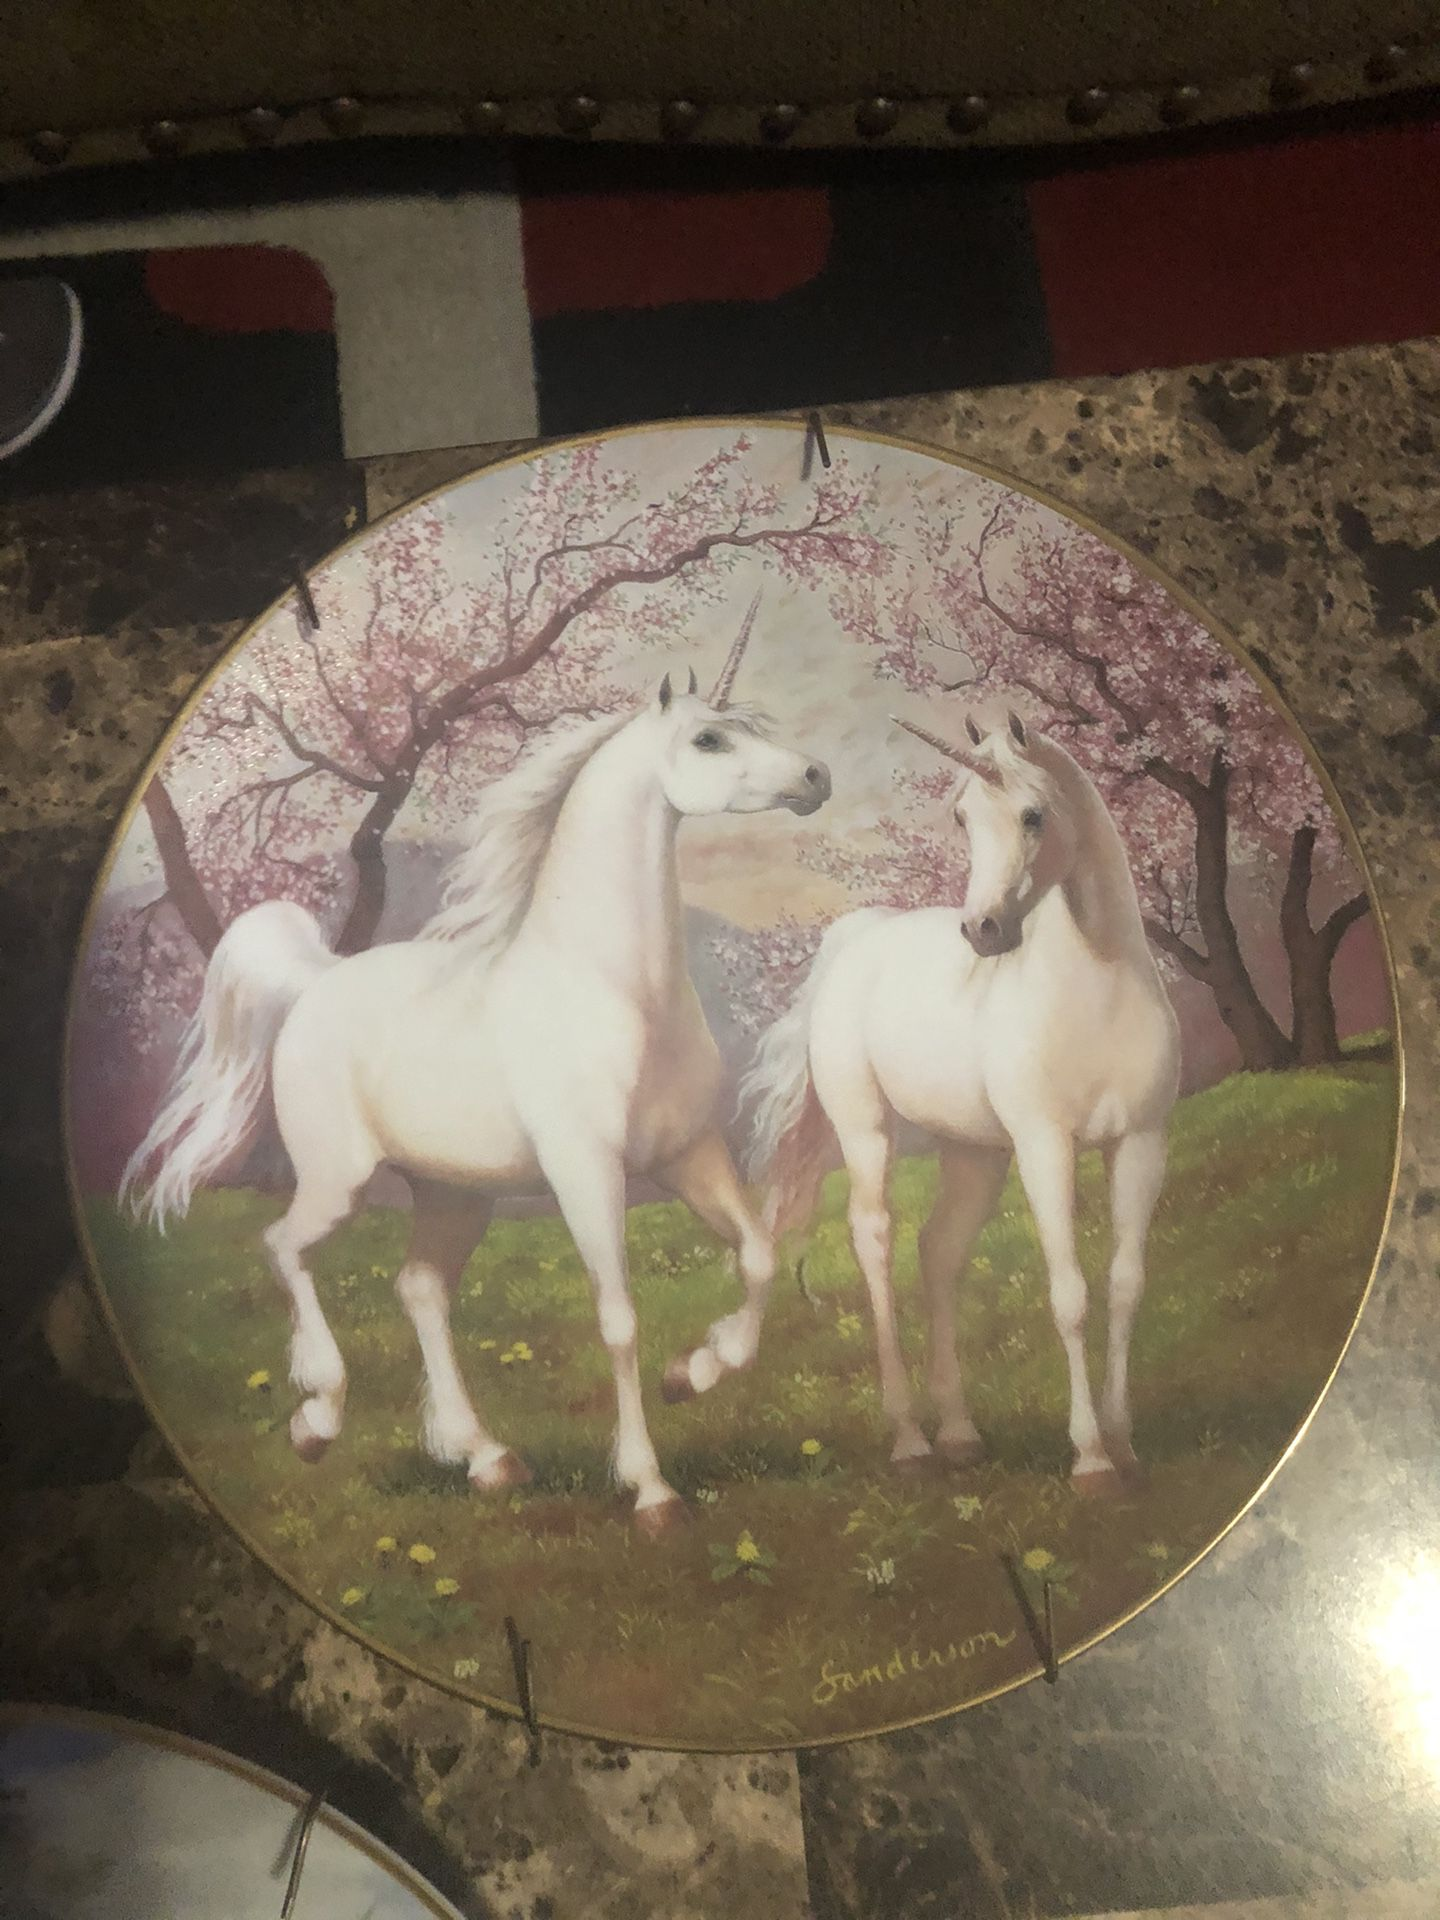 The enchanted world of the unicorn plate collection